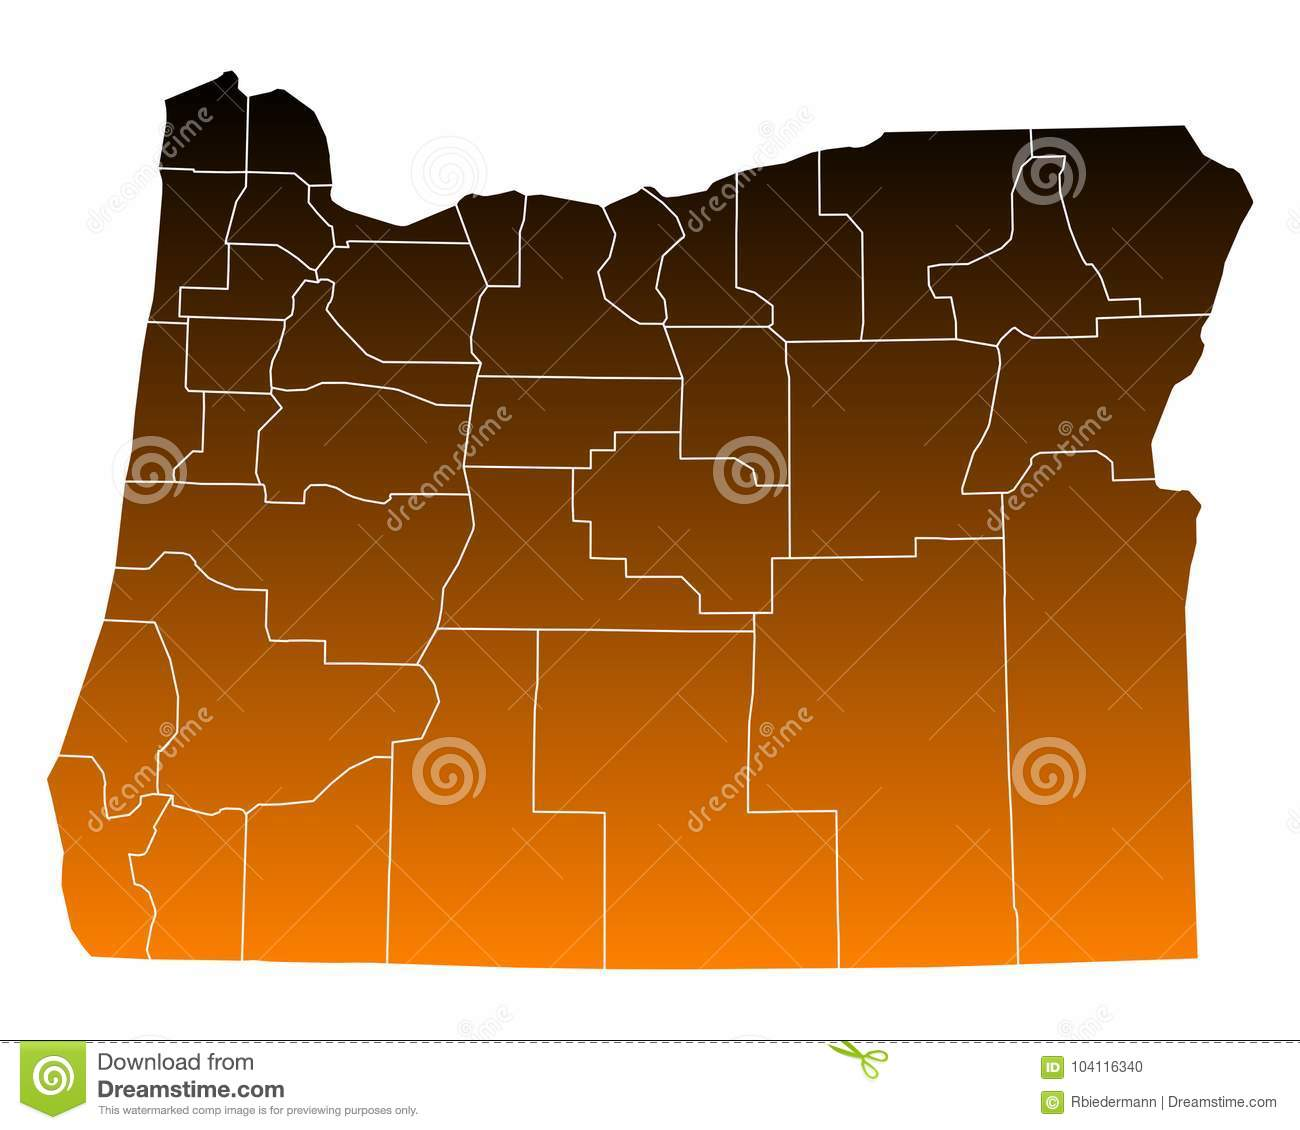 Free Oregon Map.Map Of Oregon Stock Vector Illustration Of Counties 104116340